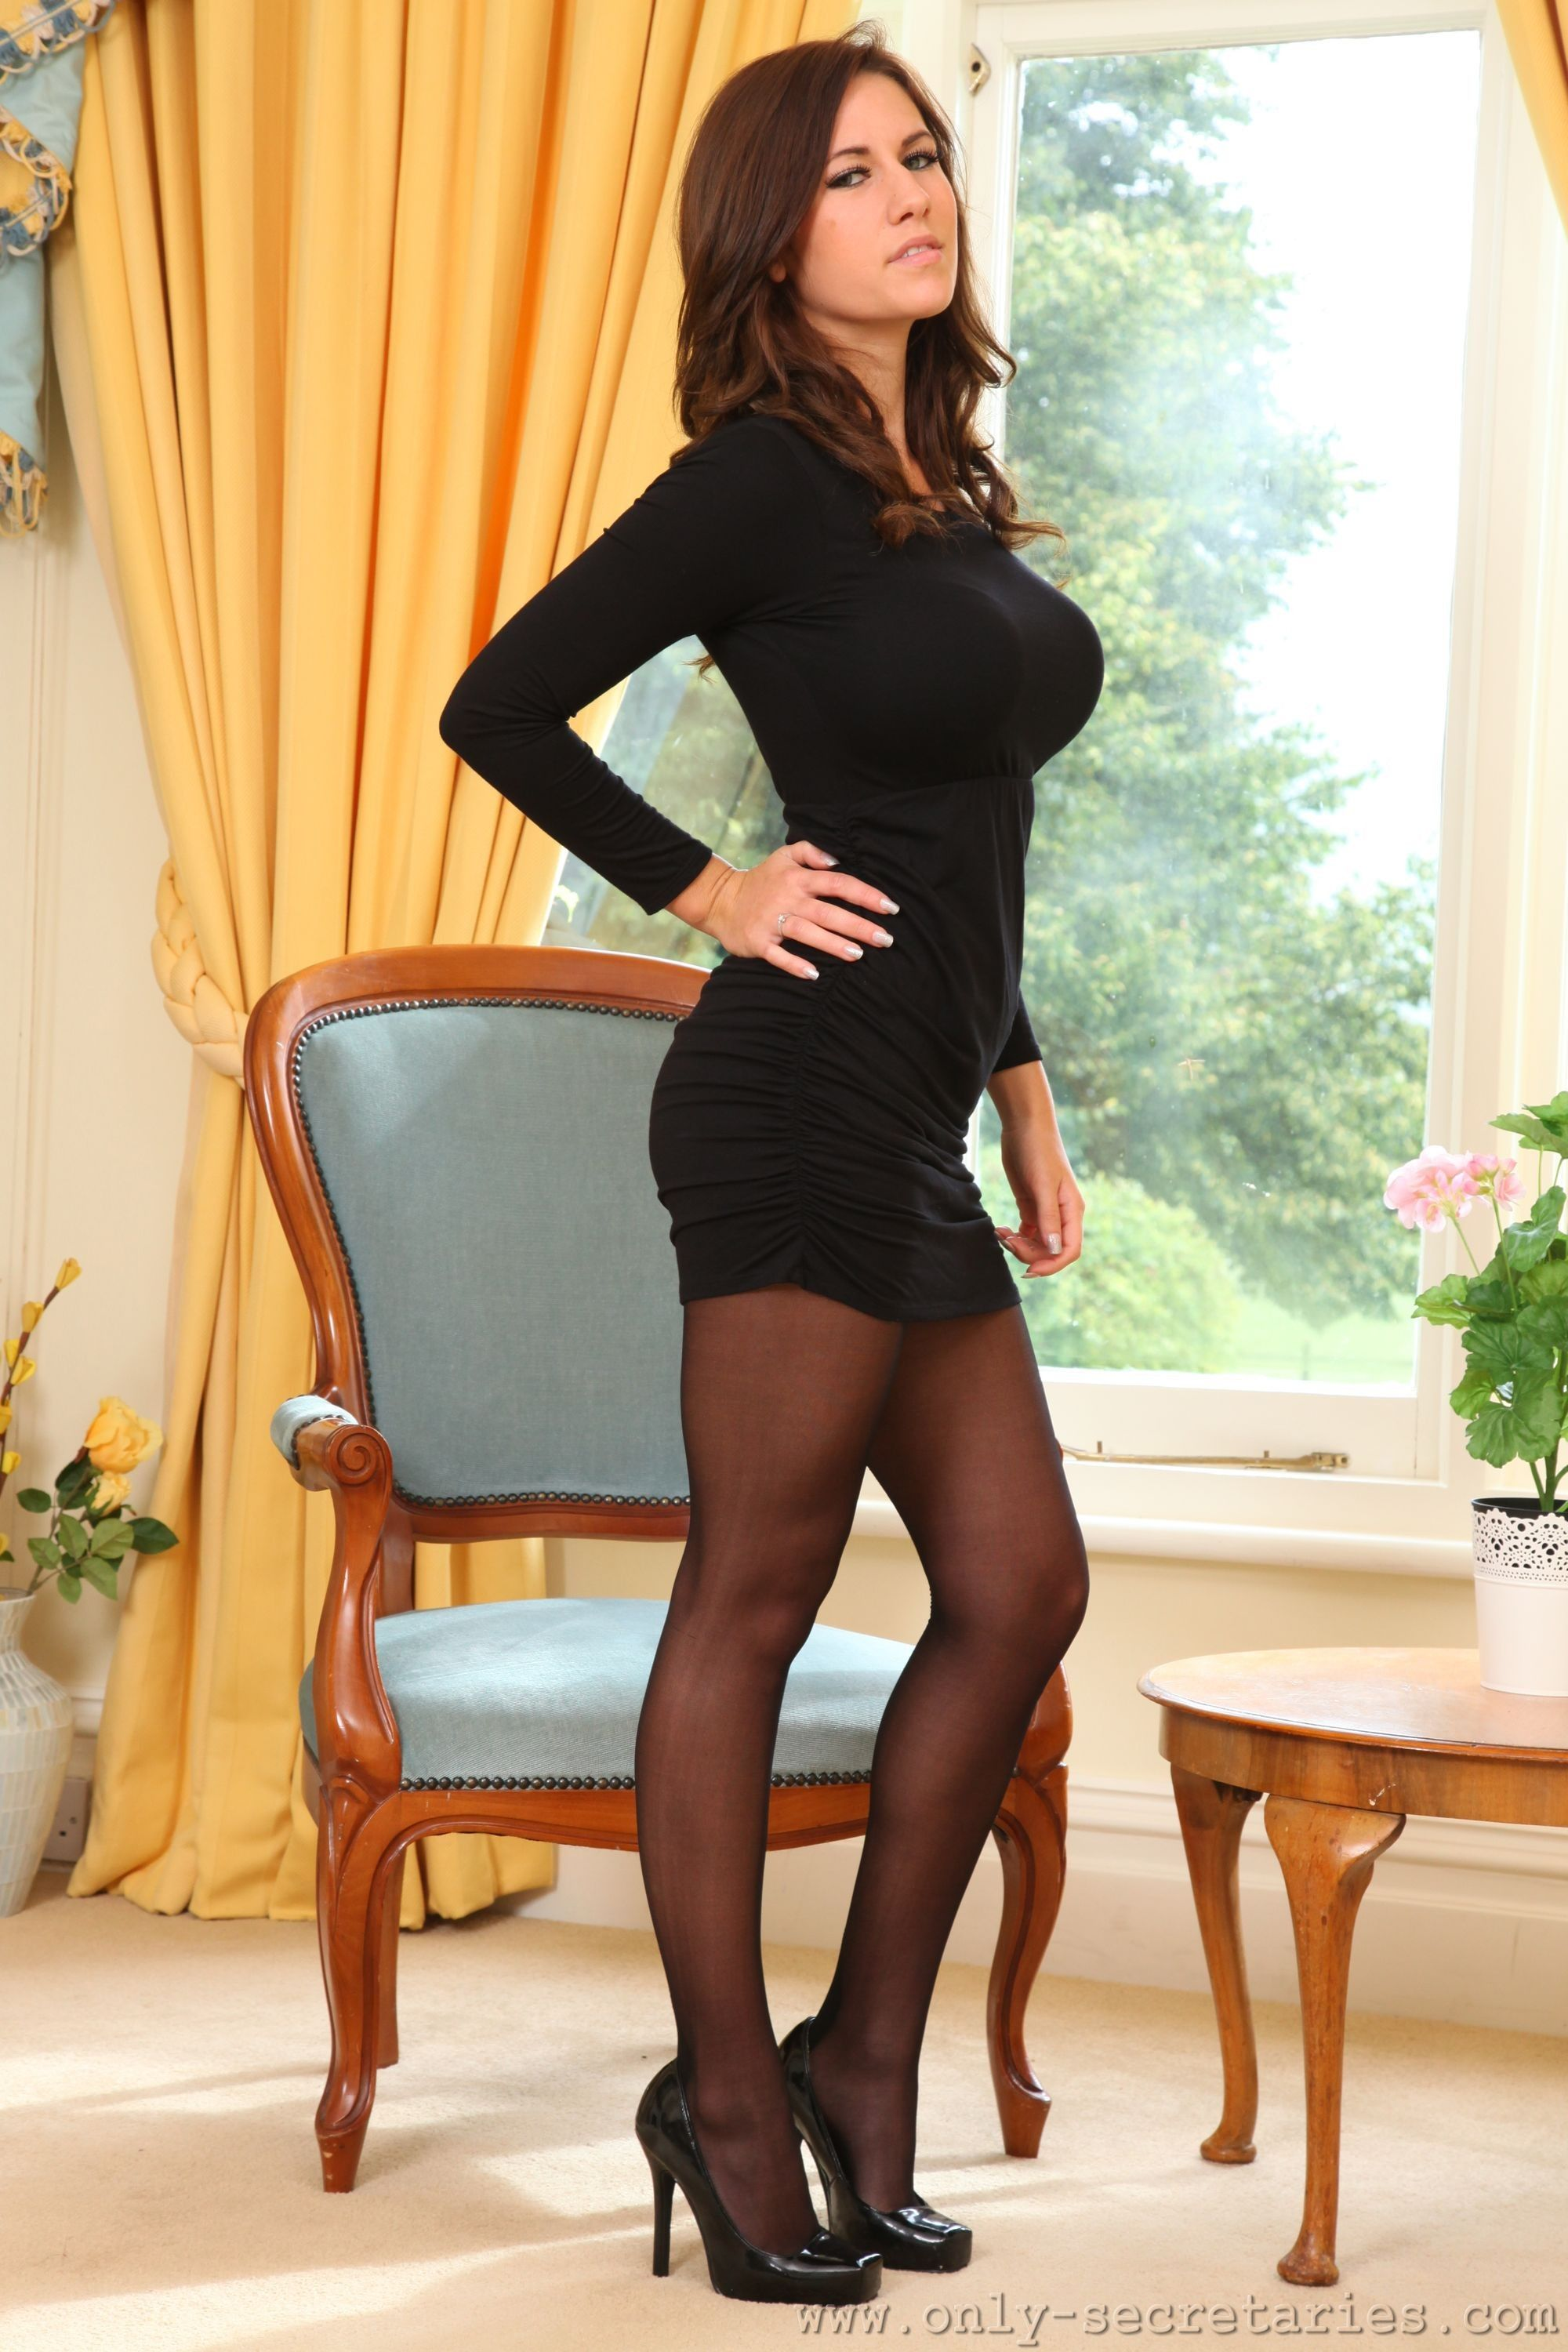 Victoria pavel pantyhose, anal good pichurs sex